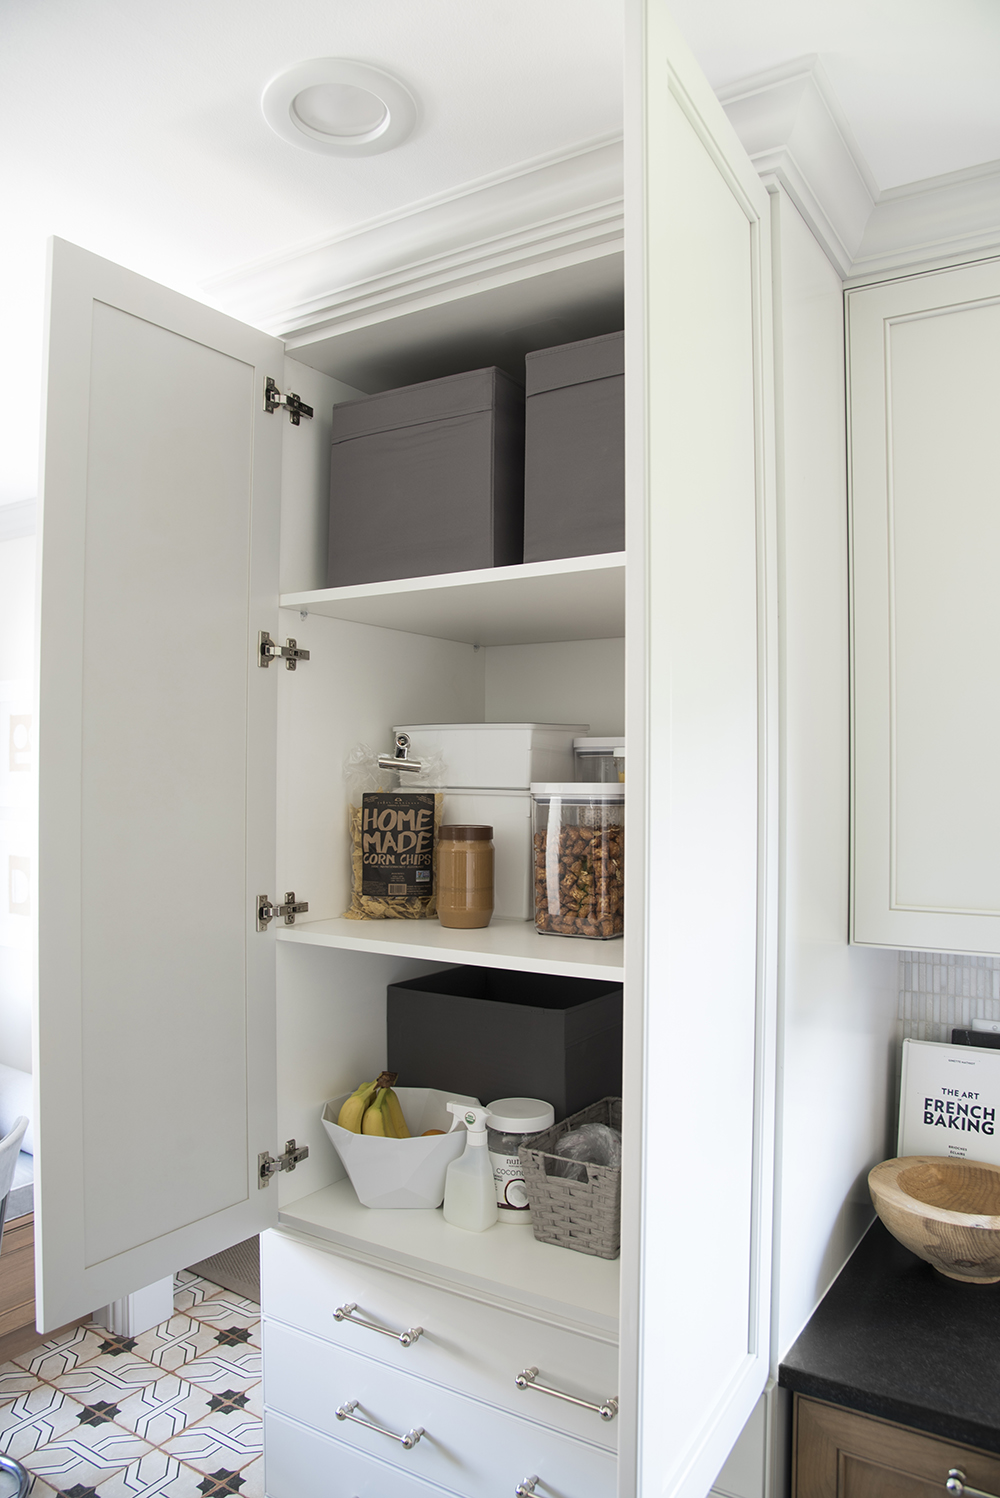 Floor To Ceiling Pantry Cabinet In Kitchen Room For Tuesday